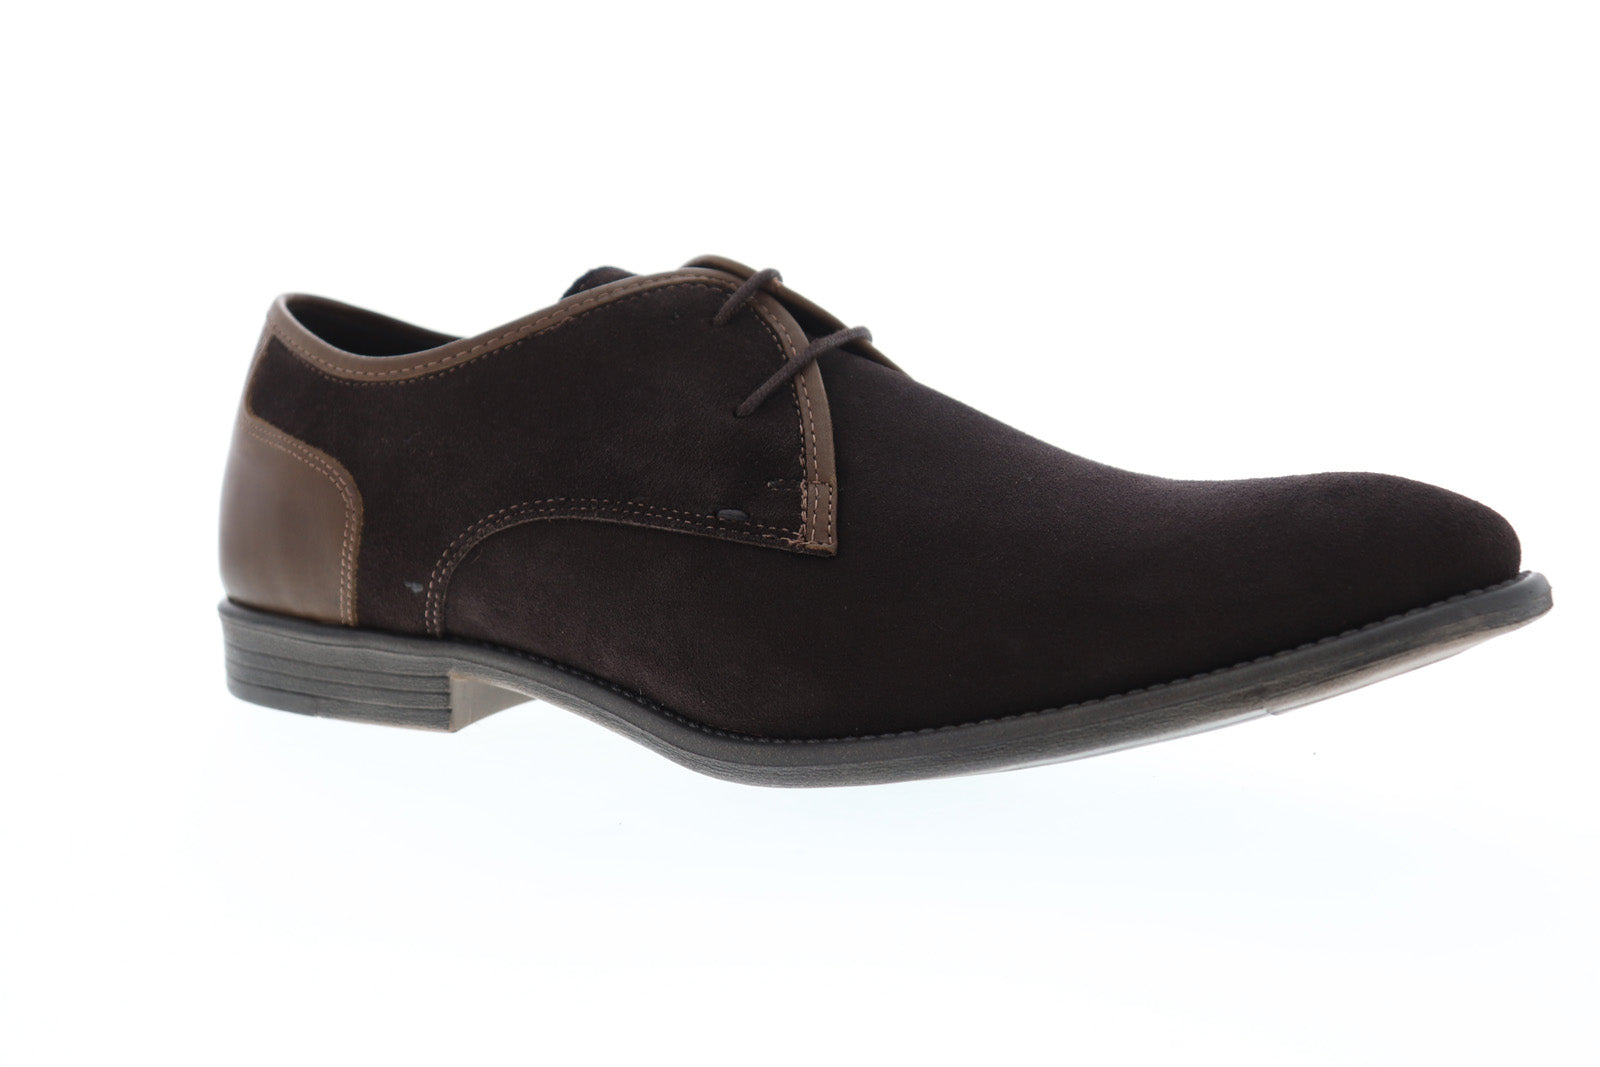 Robert Wayne TF Giona RWF1285M Mens Brown Suede Casual Lace Up Oxfords Shoes